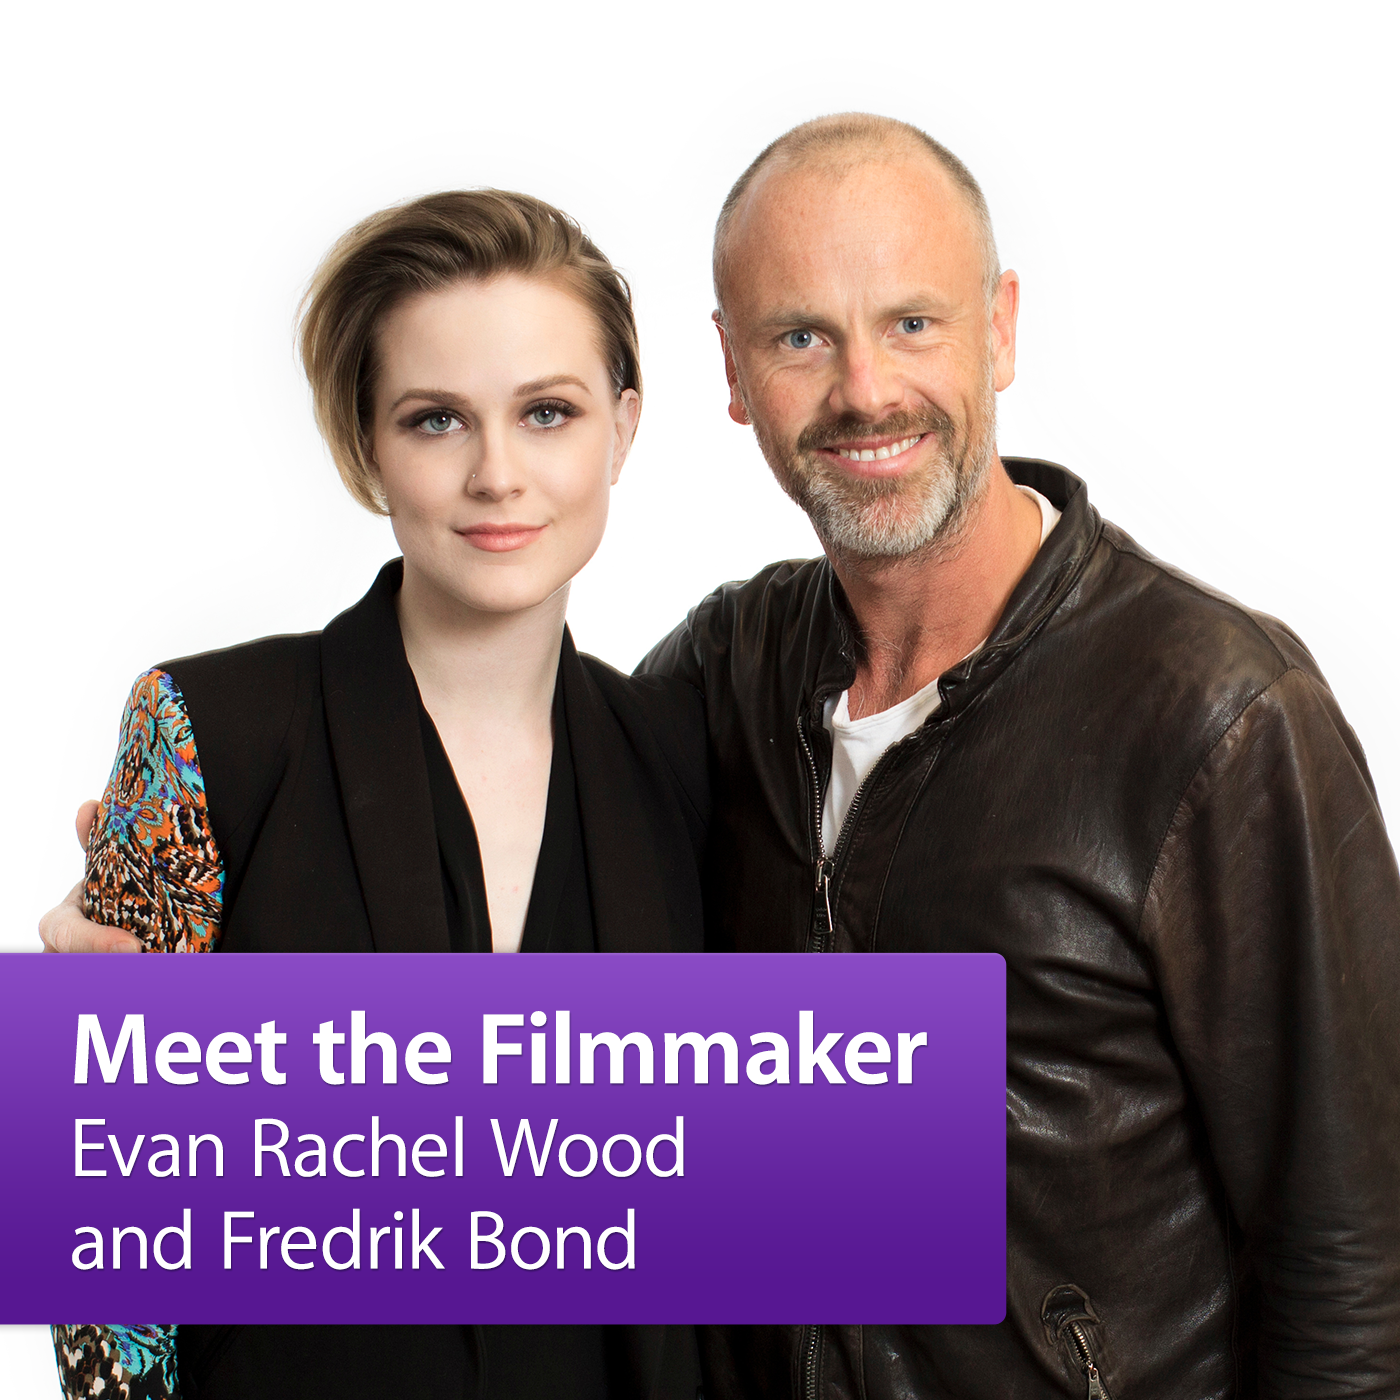 Evan Rachel Wood and Fredrik Bond: Meet the Filmmaker